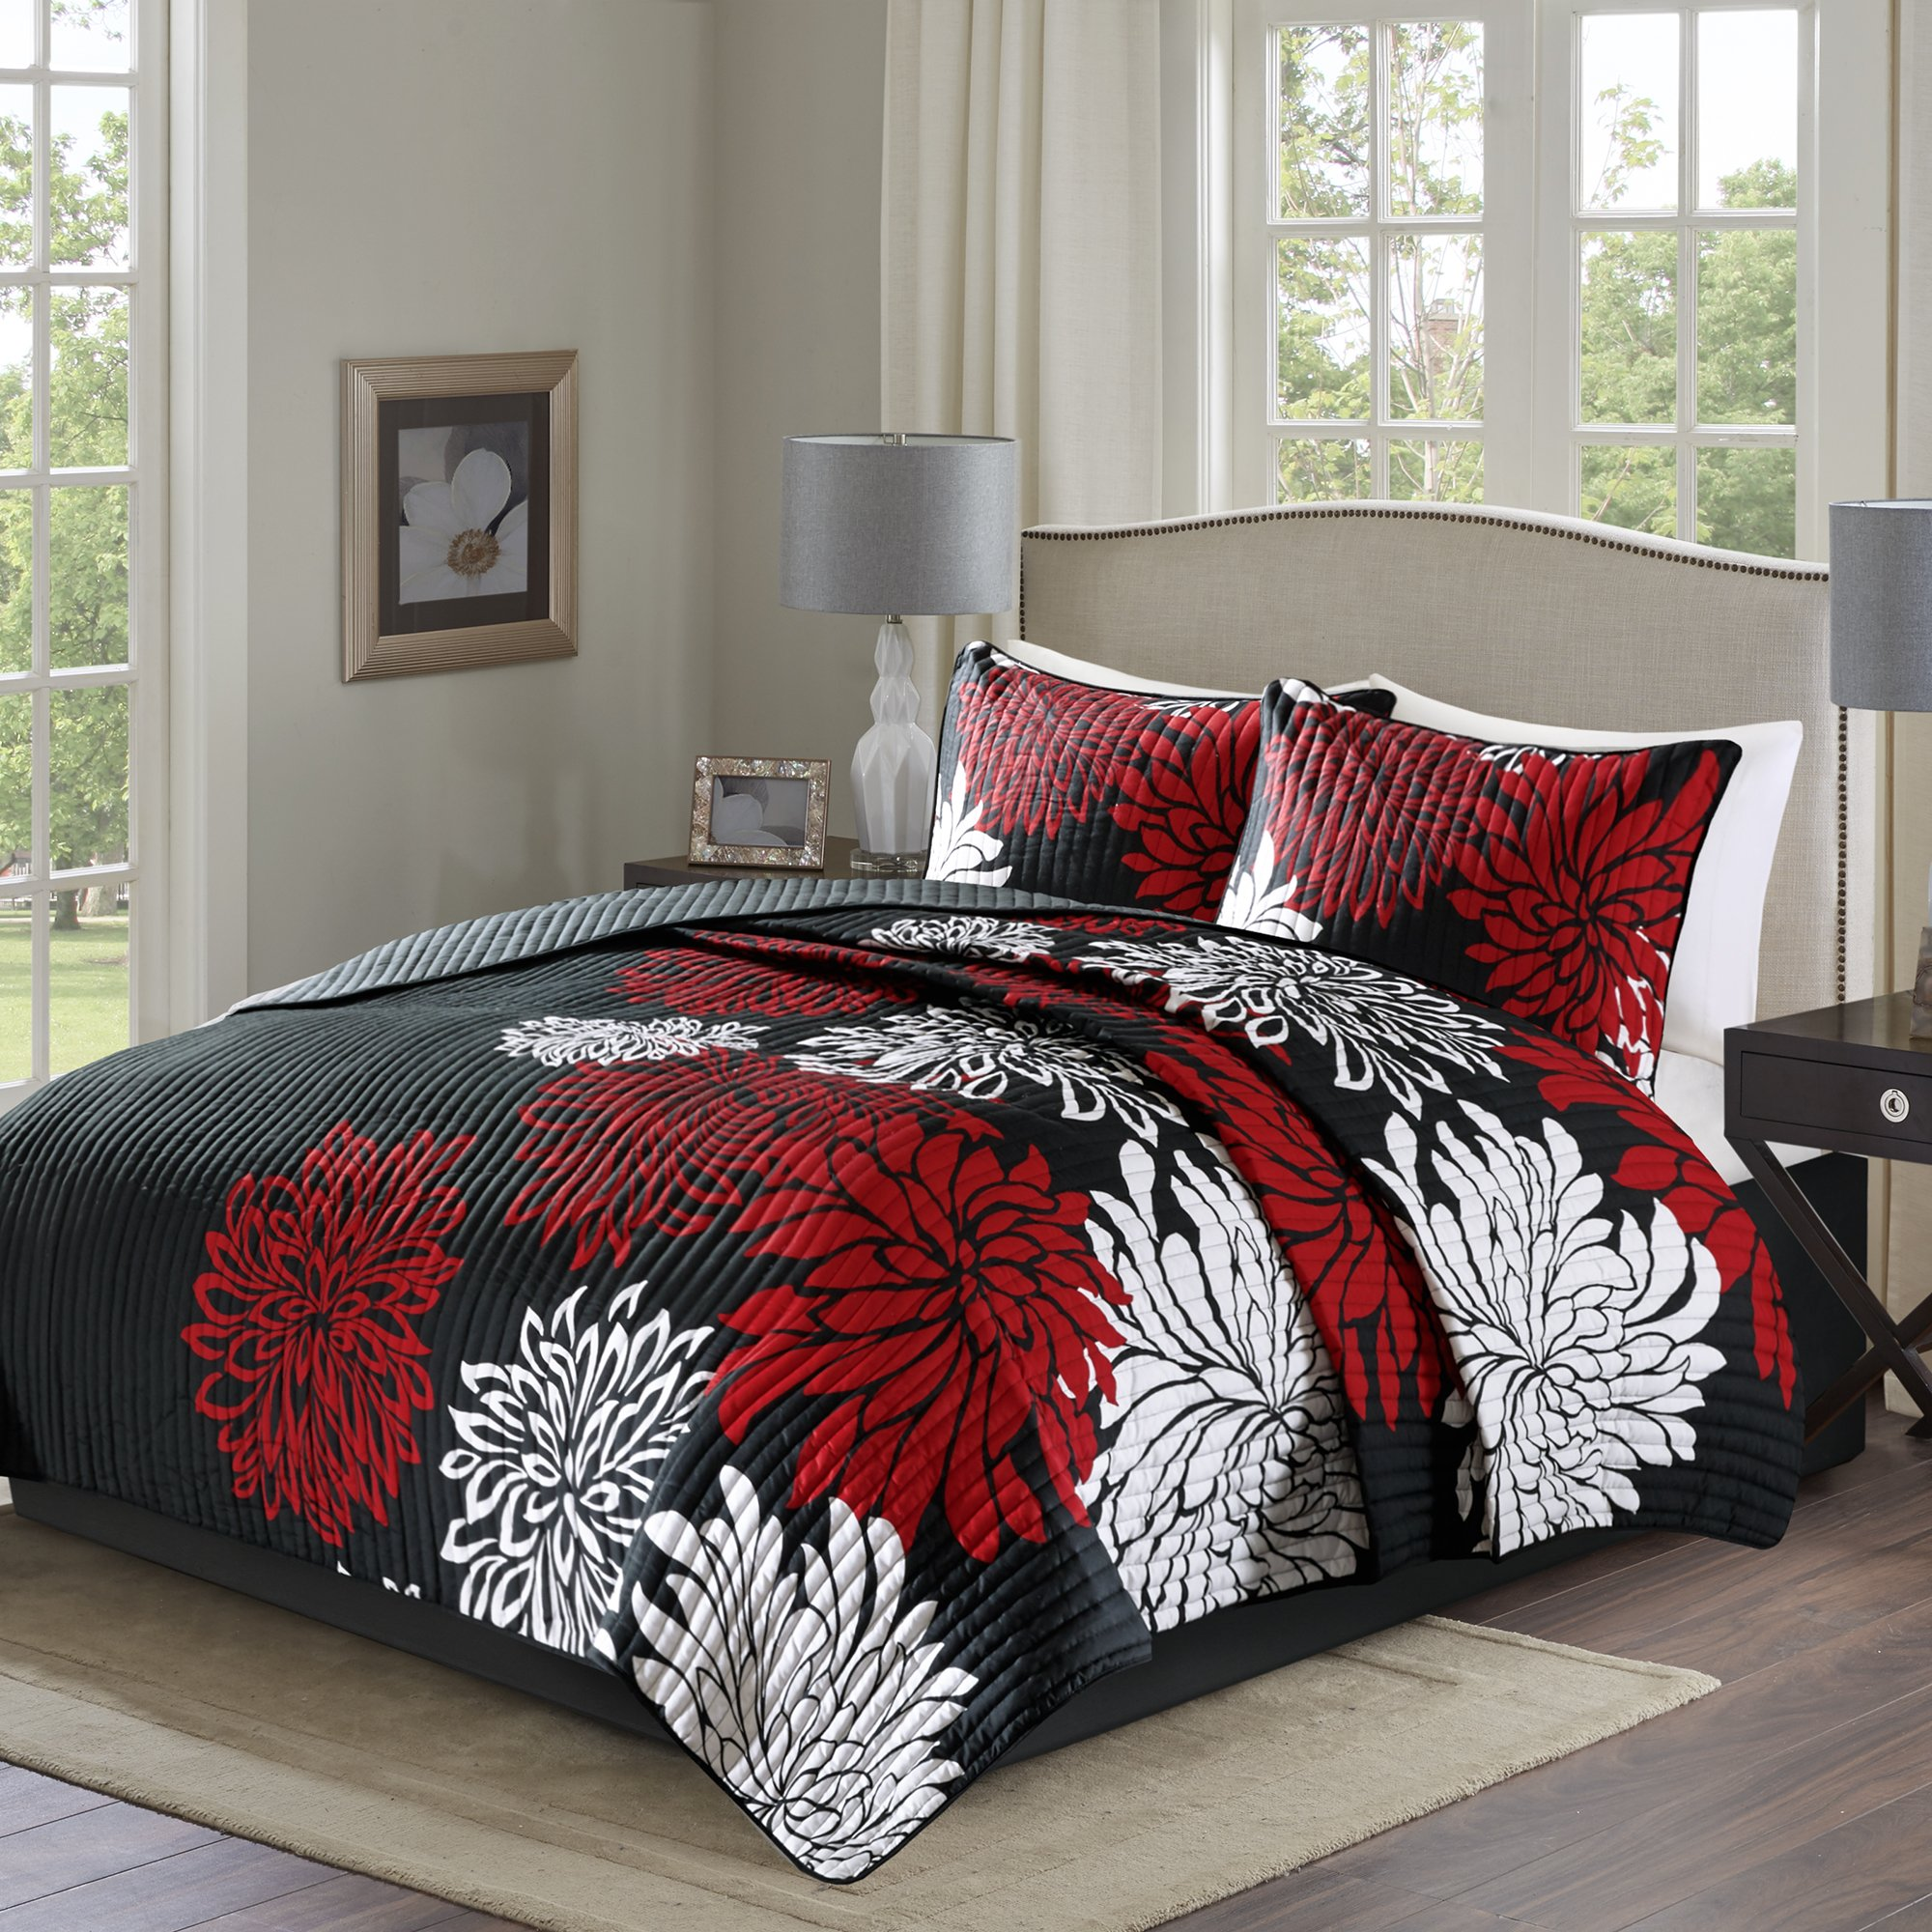 Comfort Spaces – Enya Quilt Mini Set - 3 Piece – Black and Red – Floral Printed Pattern – Full/Queen size, includes 1 Quilt, 2 Shams by Comfort Spaces